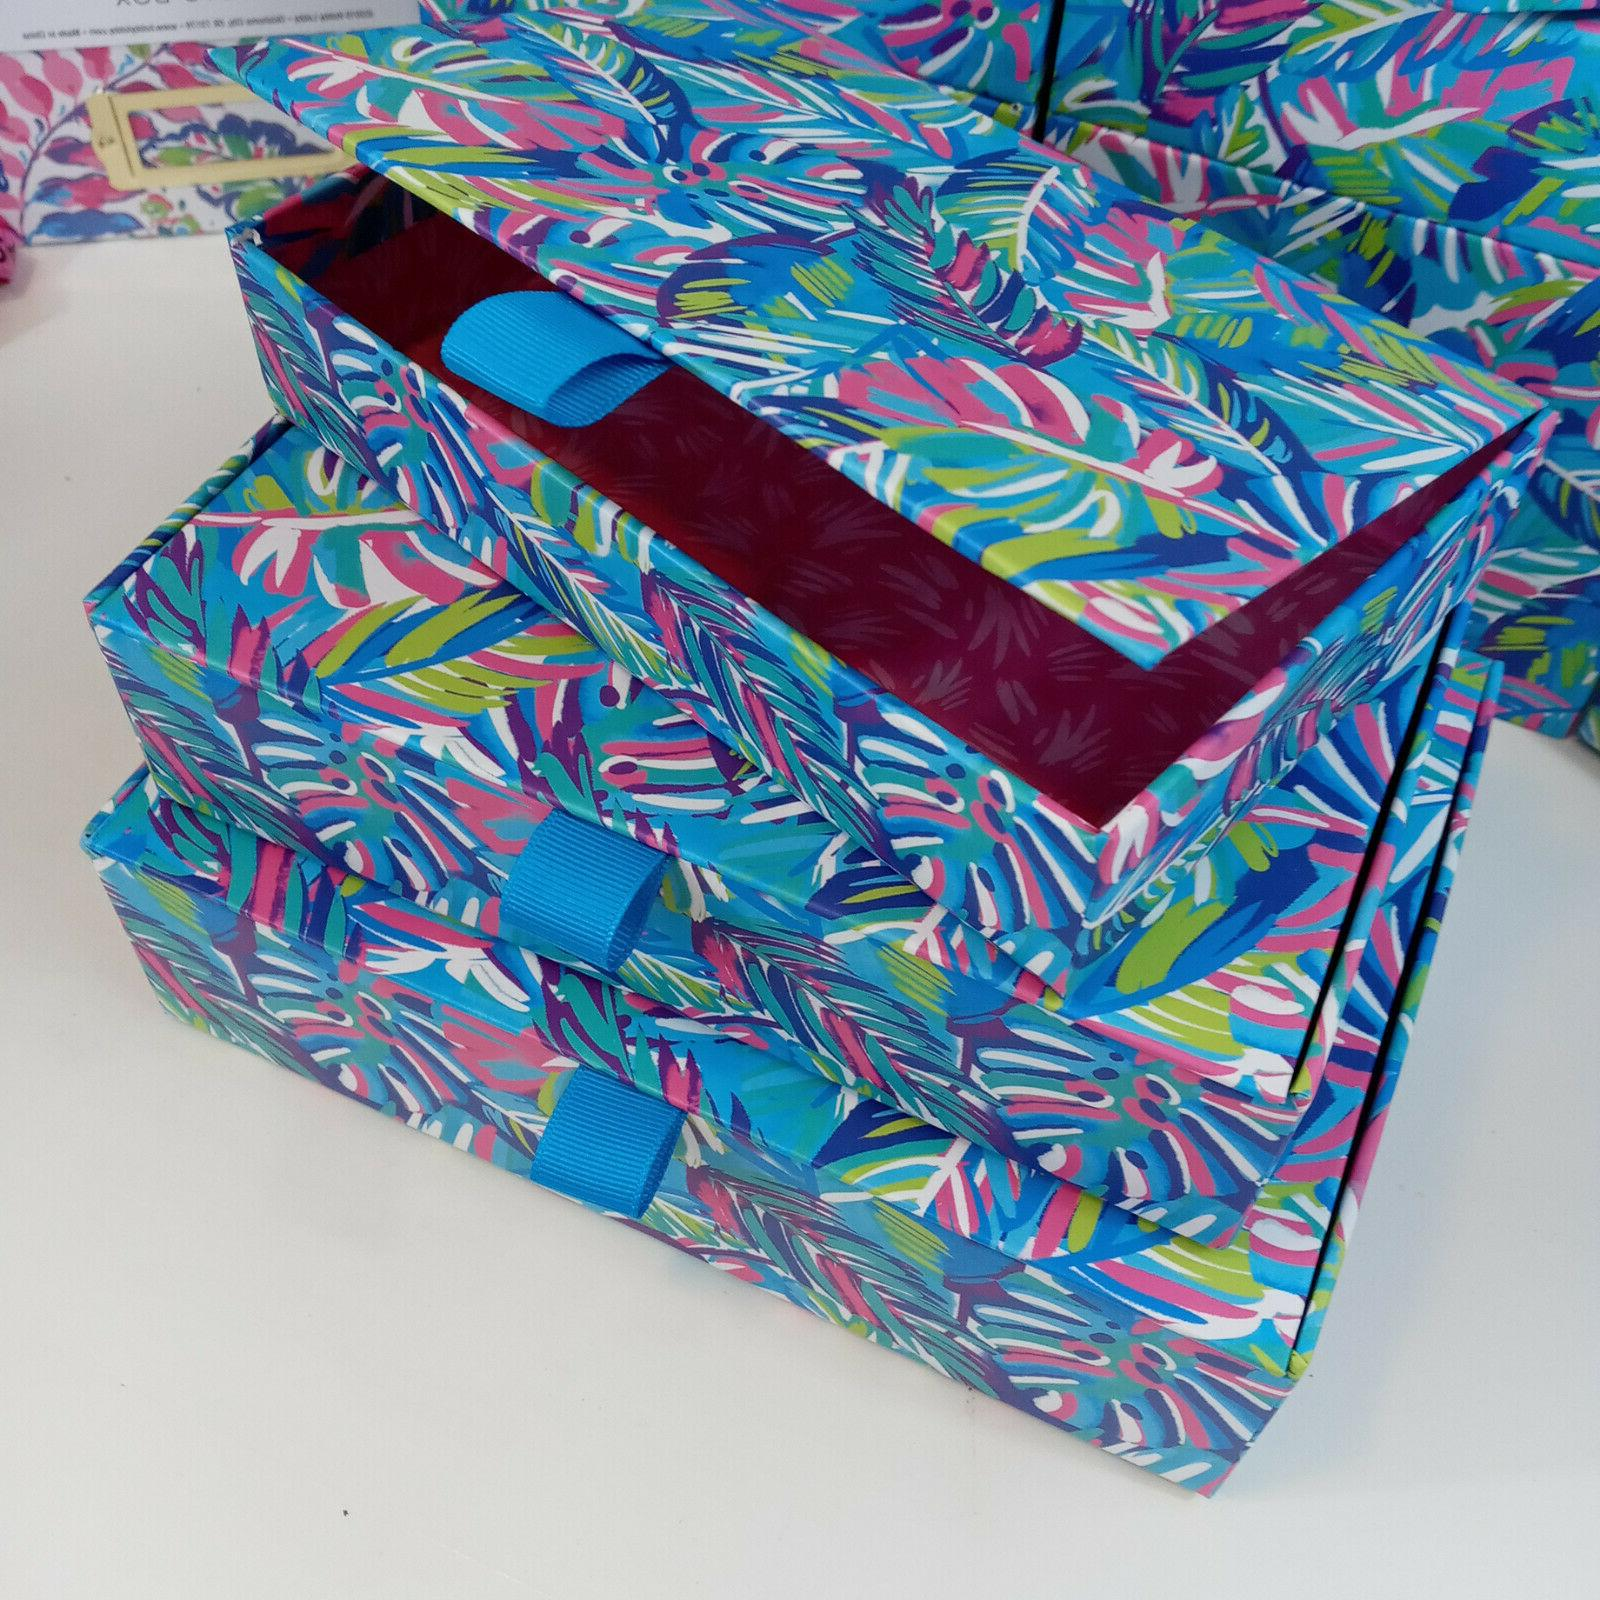 Decorative Box of 3 Stacking